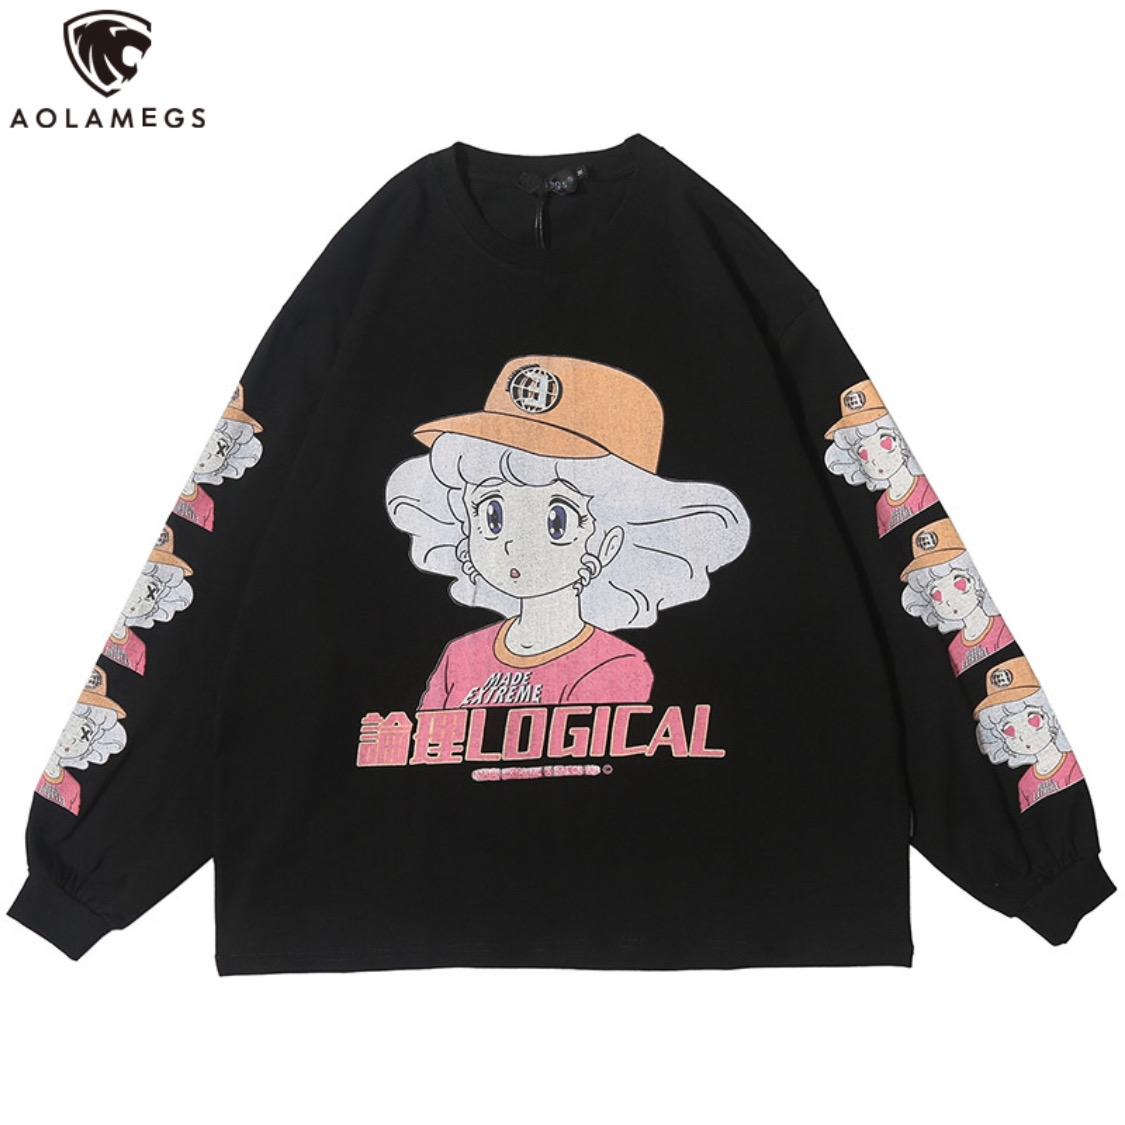 Aolamegs Sweatshirt Cartoon Comics Print Pullover Cozy 3 Color Optional All-match Hip Hop College Style Streetwear Couple Autumn